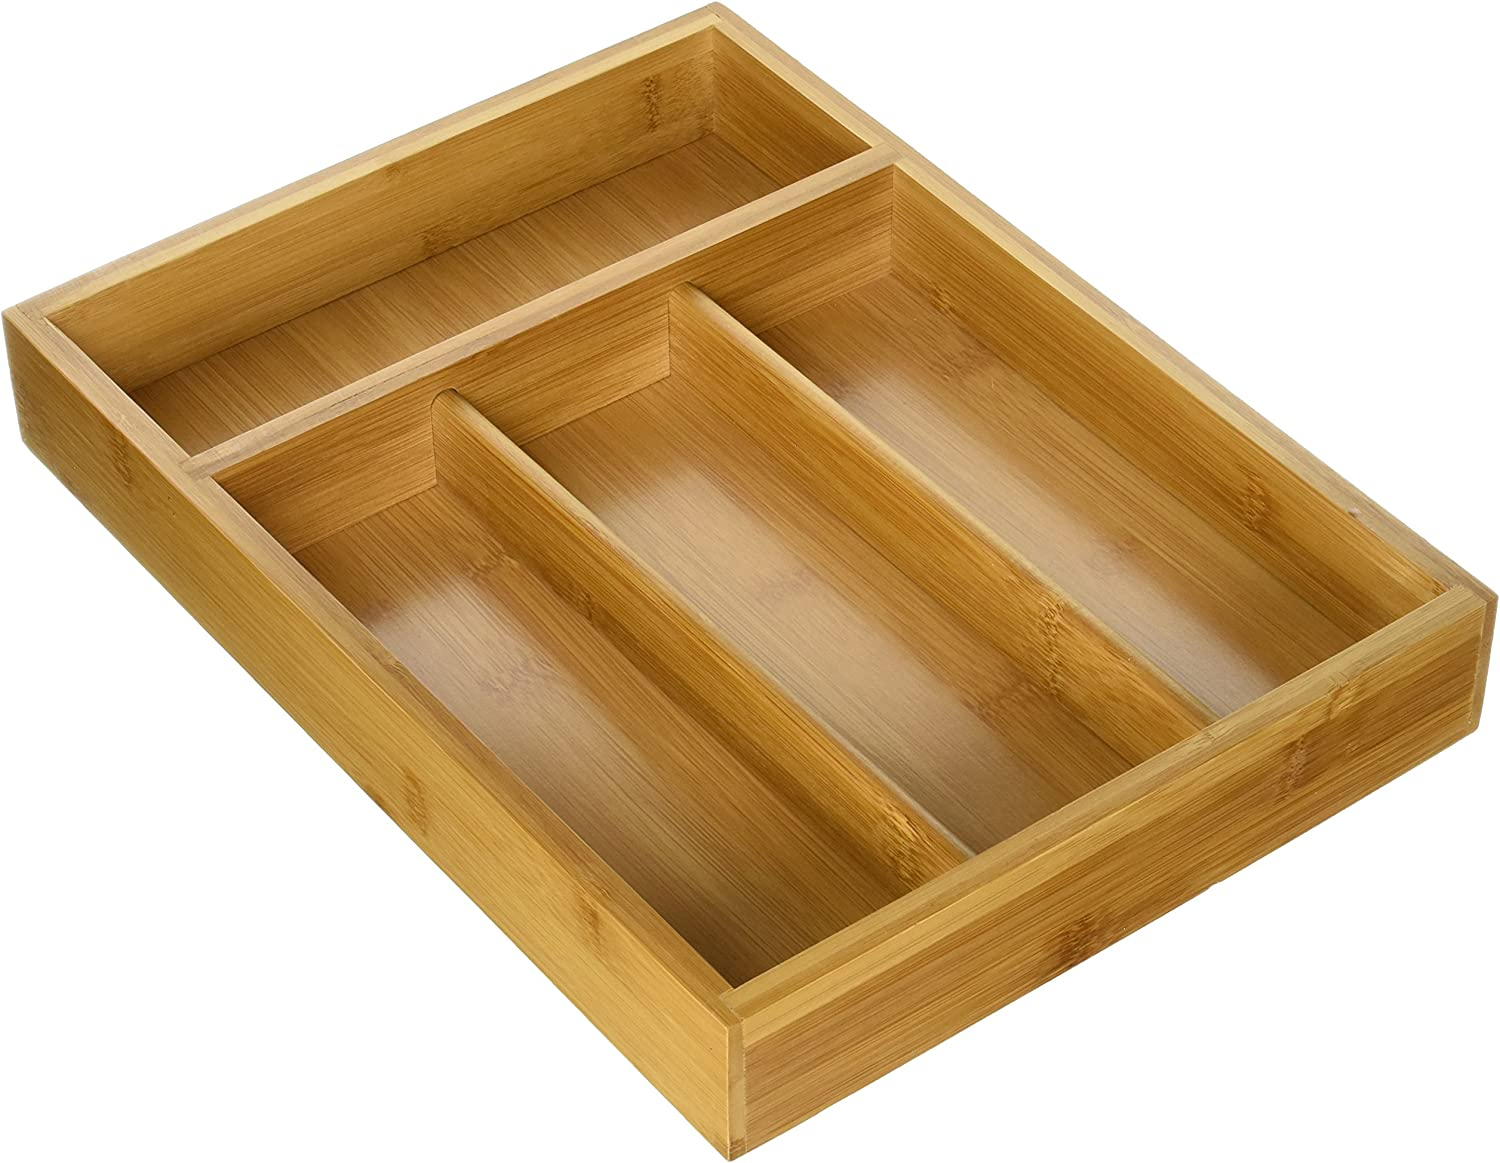 Honey-Can-Do KCH-01078 Bamboo Cutlery Tray, 4-Compartment Tray